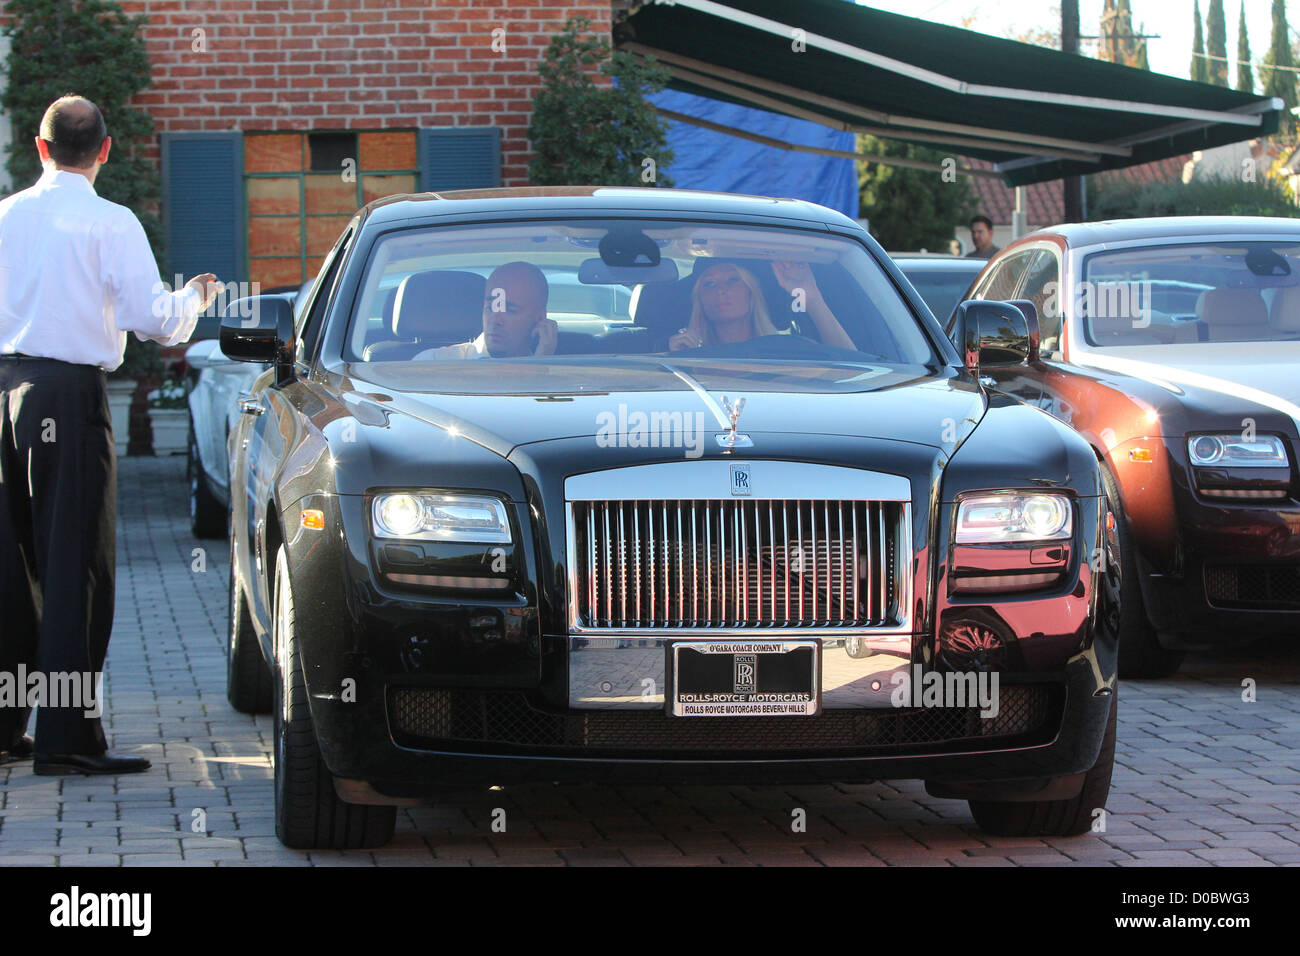 Paris Hilton Picks Up Her New Rolls Royce Ghost From Luxury Car